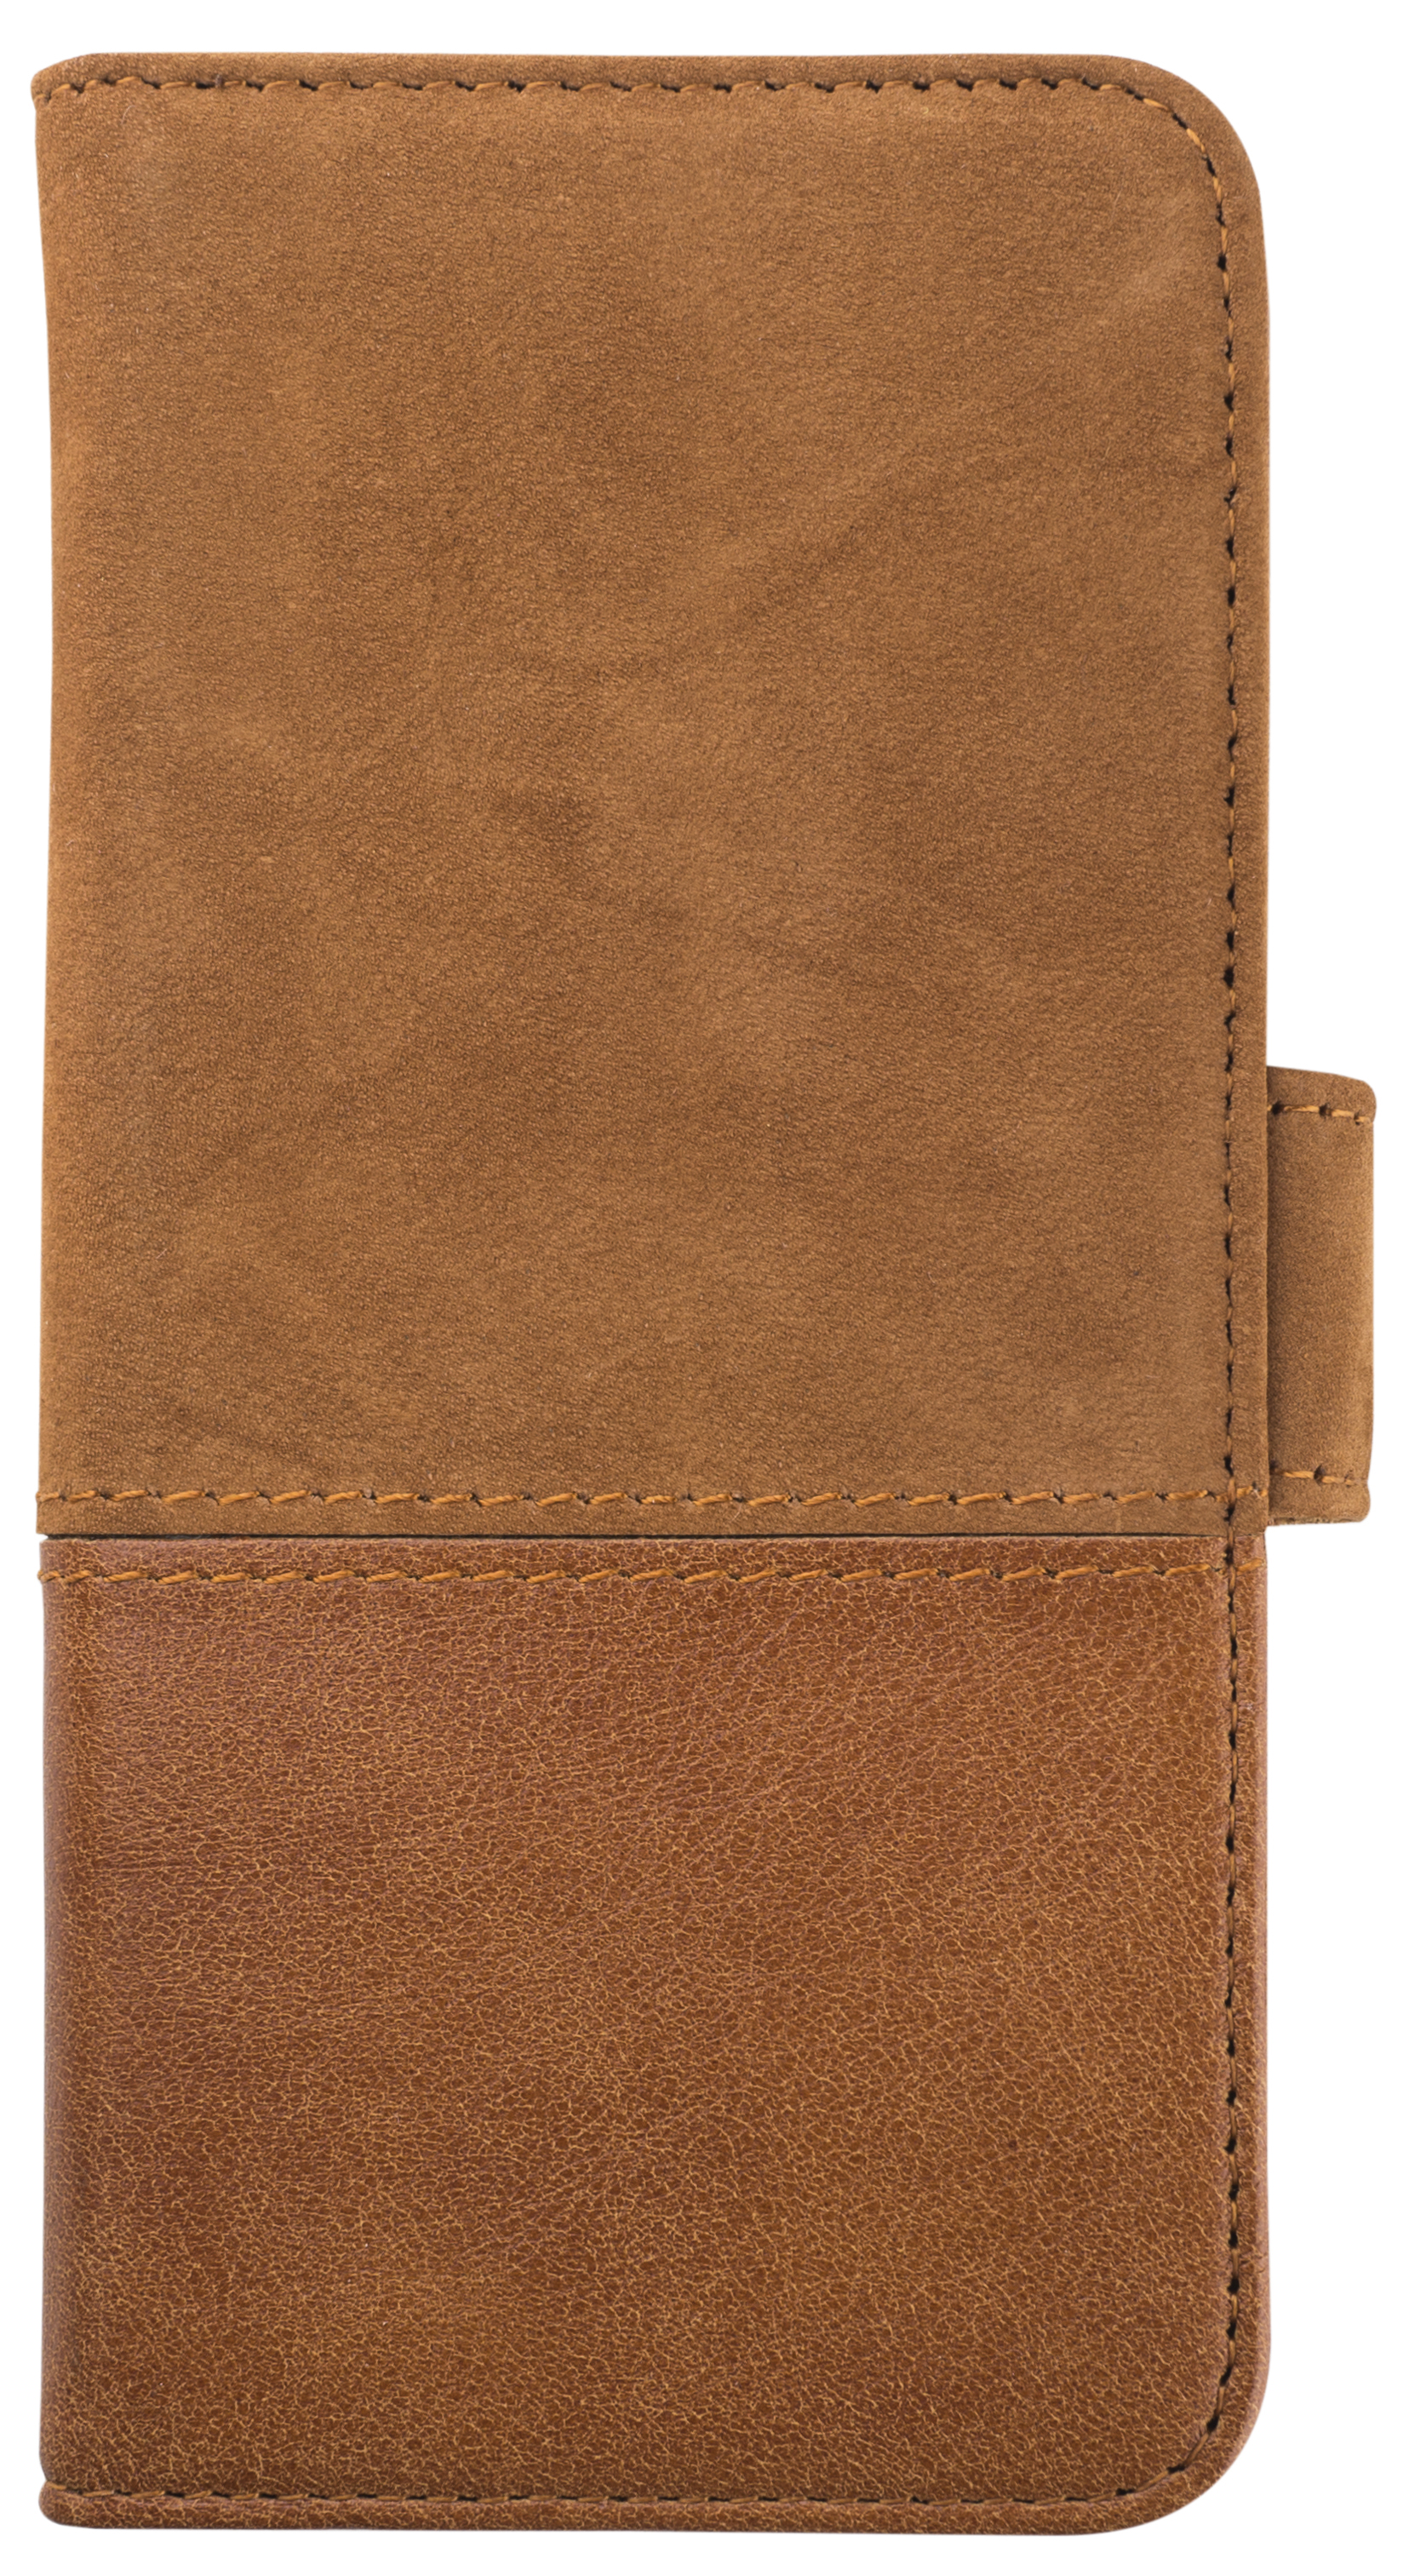 HOLDIT Wallet magnet pouzdro flip Samsung Galaxy S8 brown leather/suede